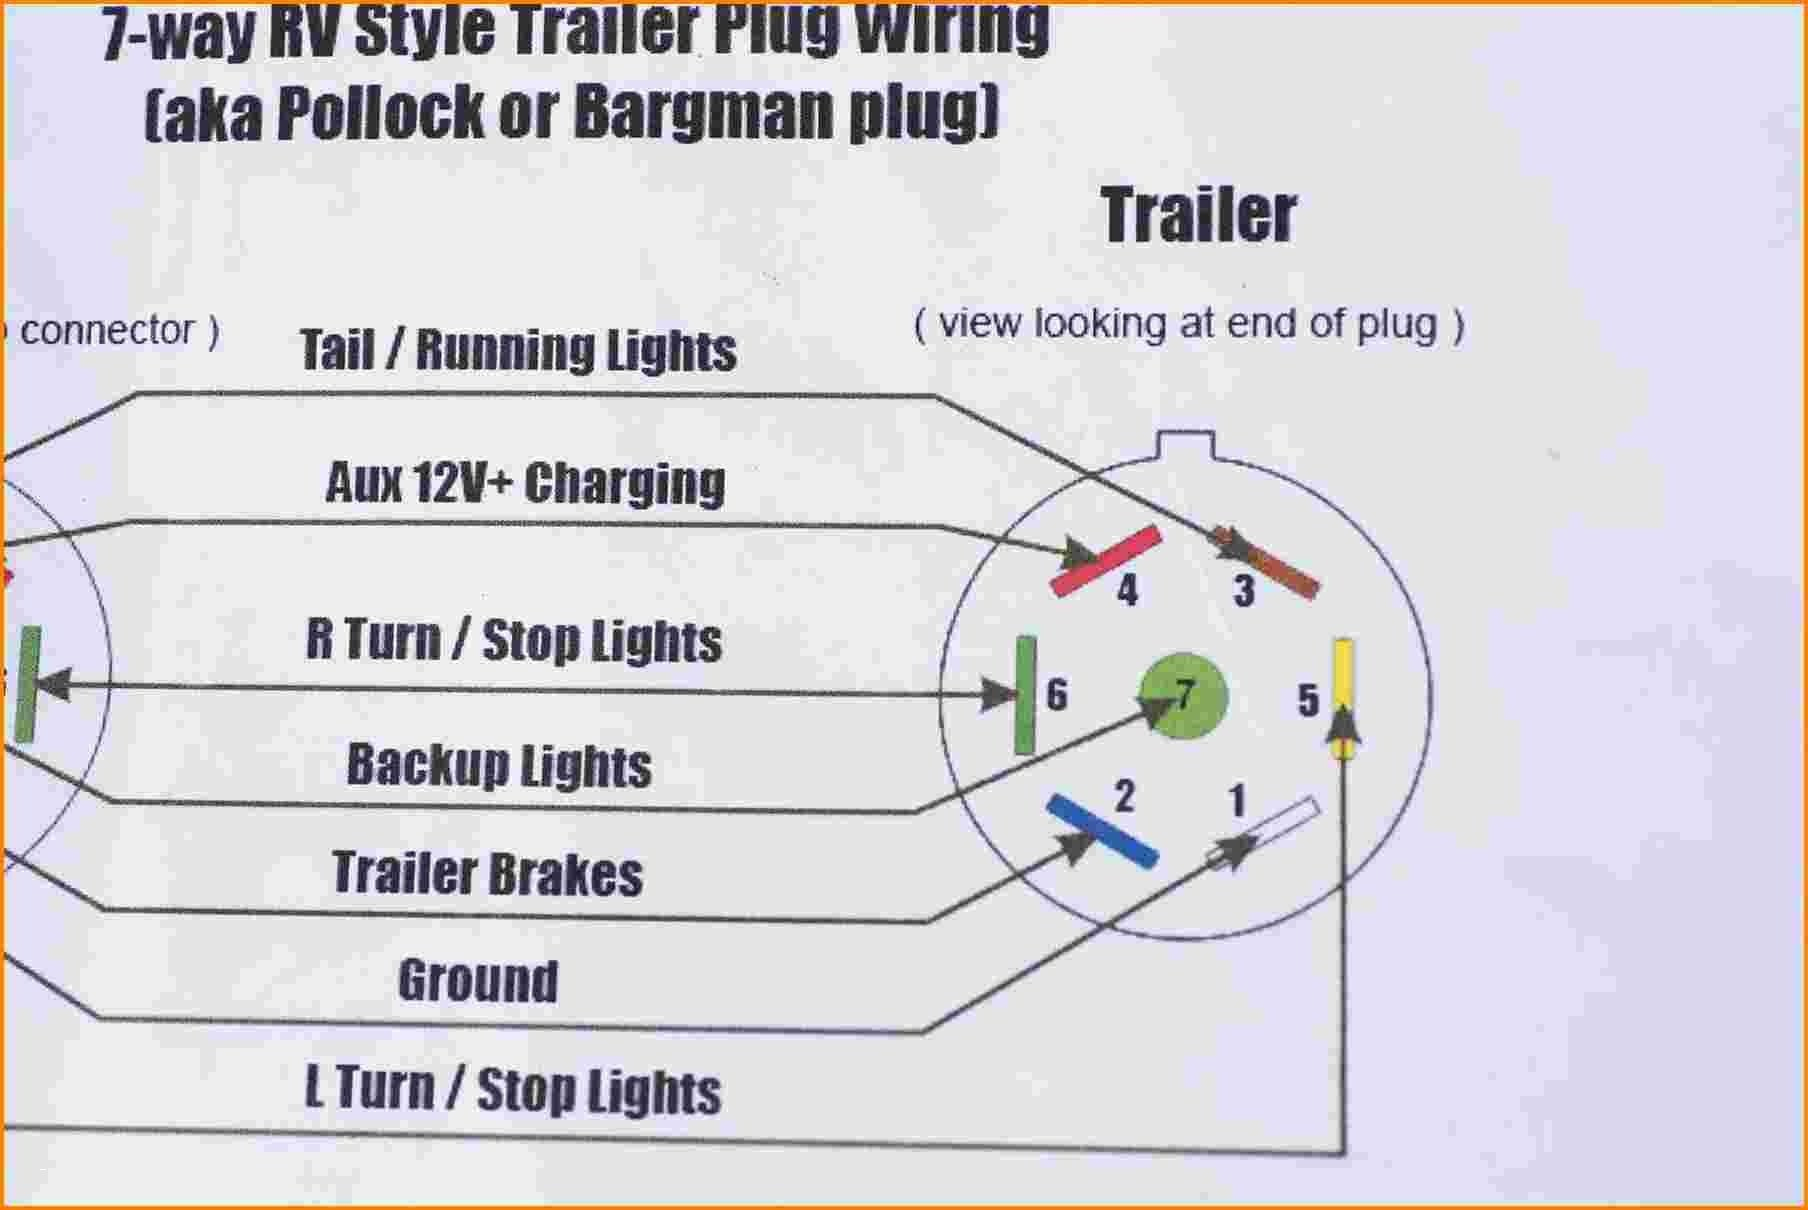 Bargman Trailer Plug Wiring Diagram | Wiring Diagram - Hopkins Trailer Plug Wiring Diagram